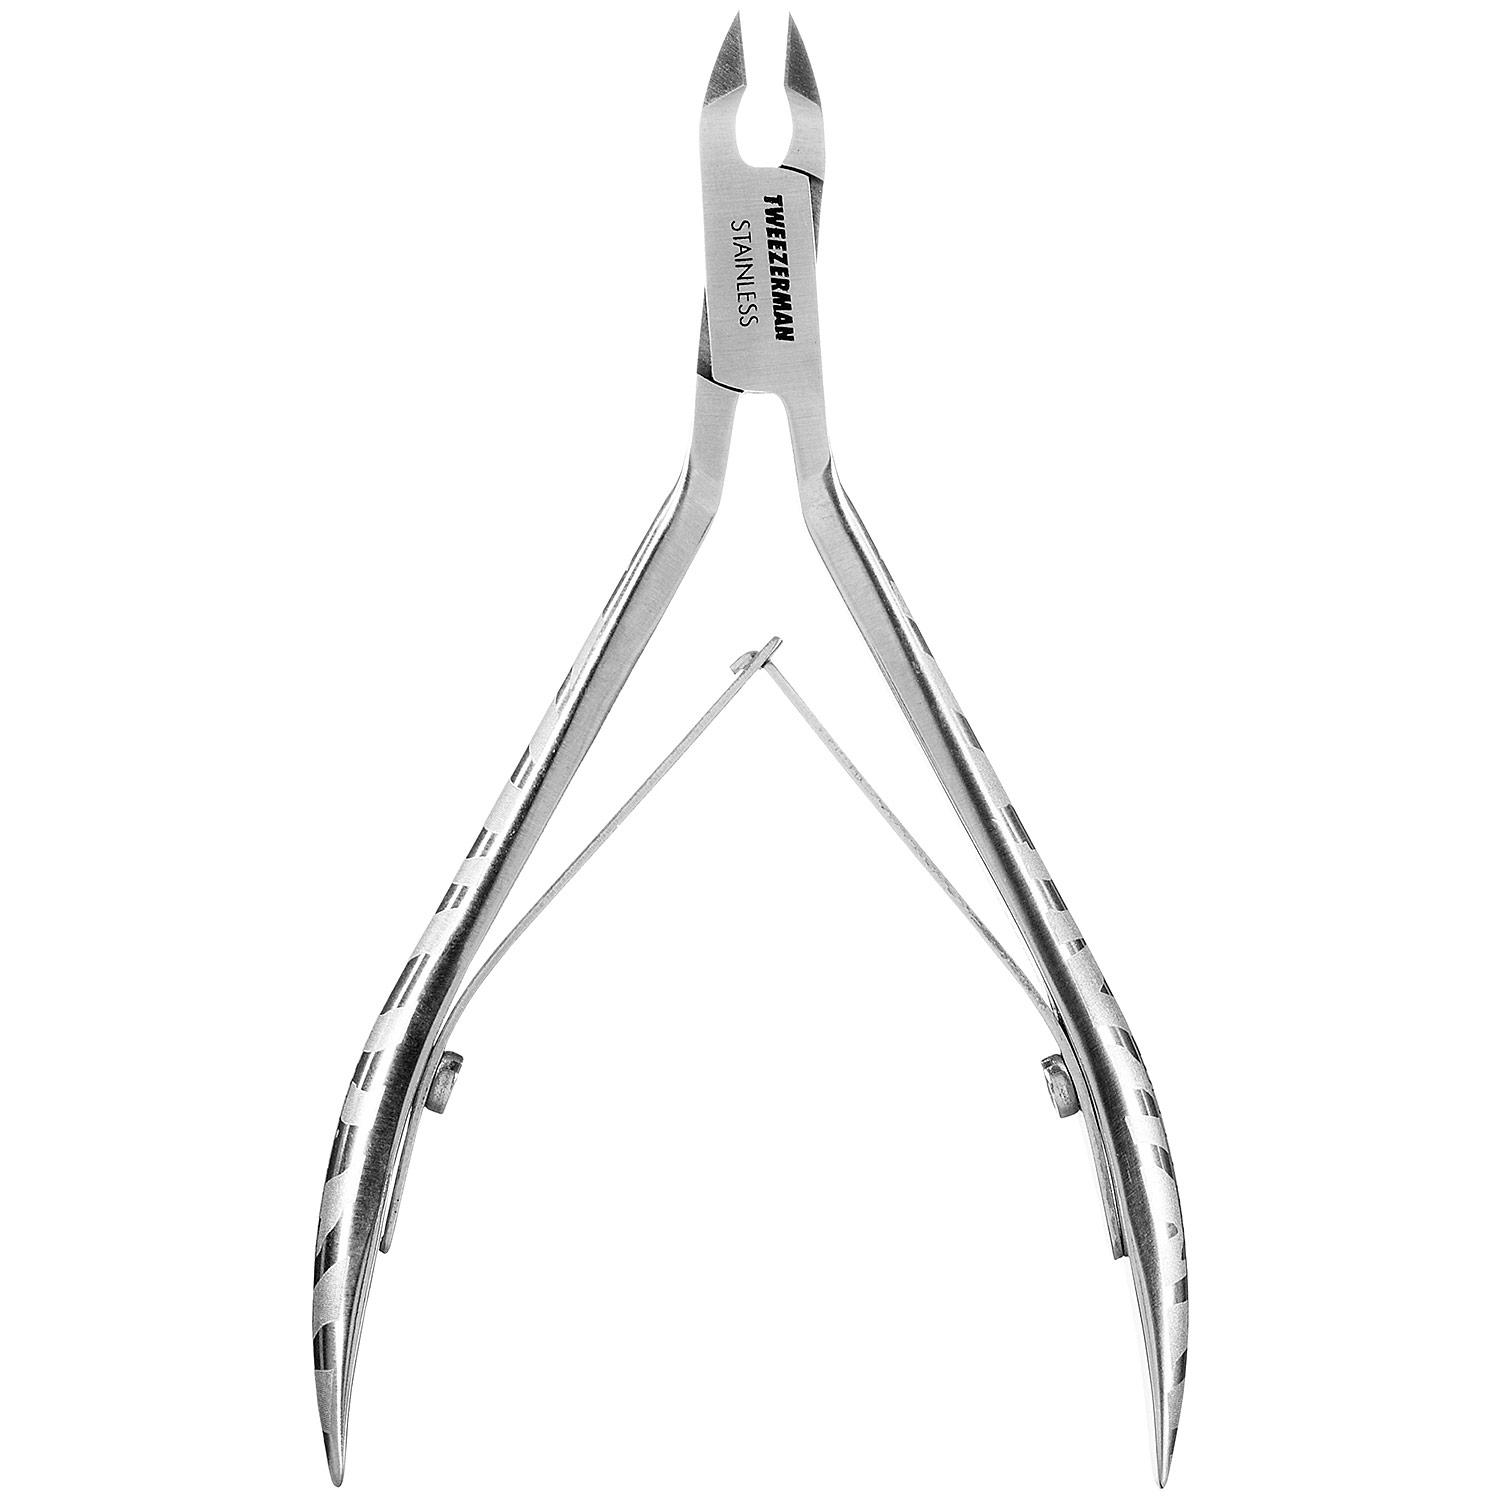 Satin Etched Zebra Cuticle Nipper